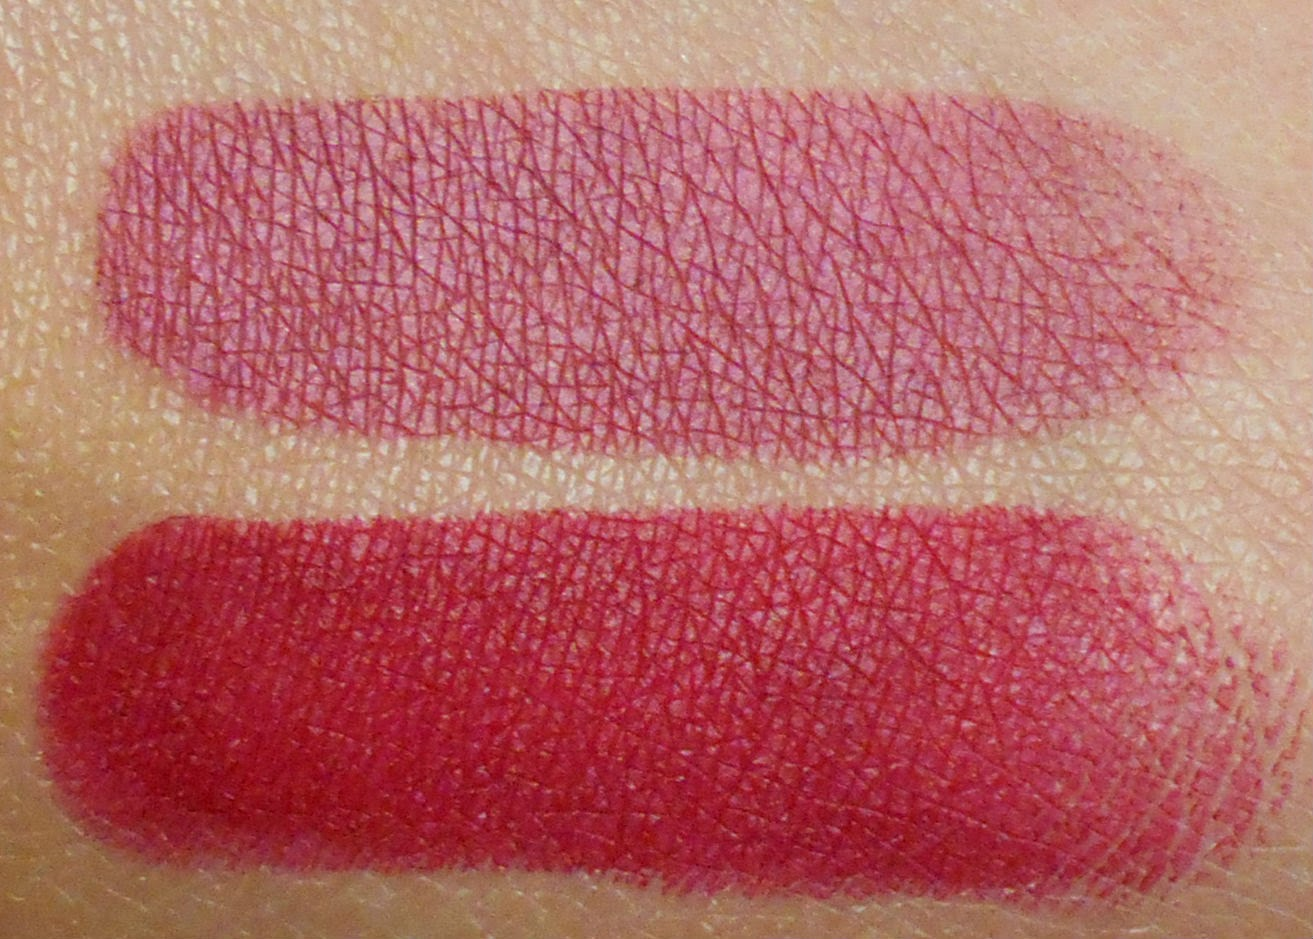 bh Cosmetics Color Lock Long Lasting Matte Lipstick